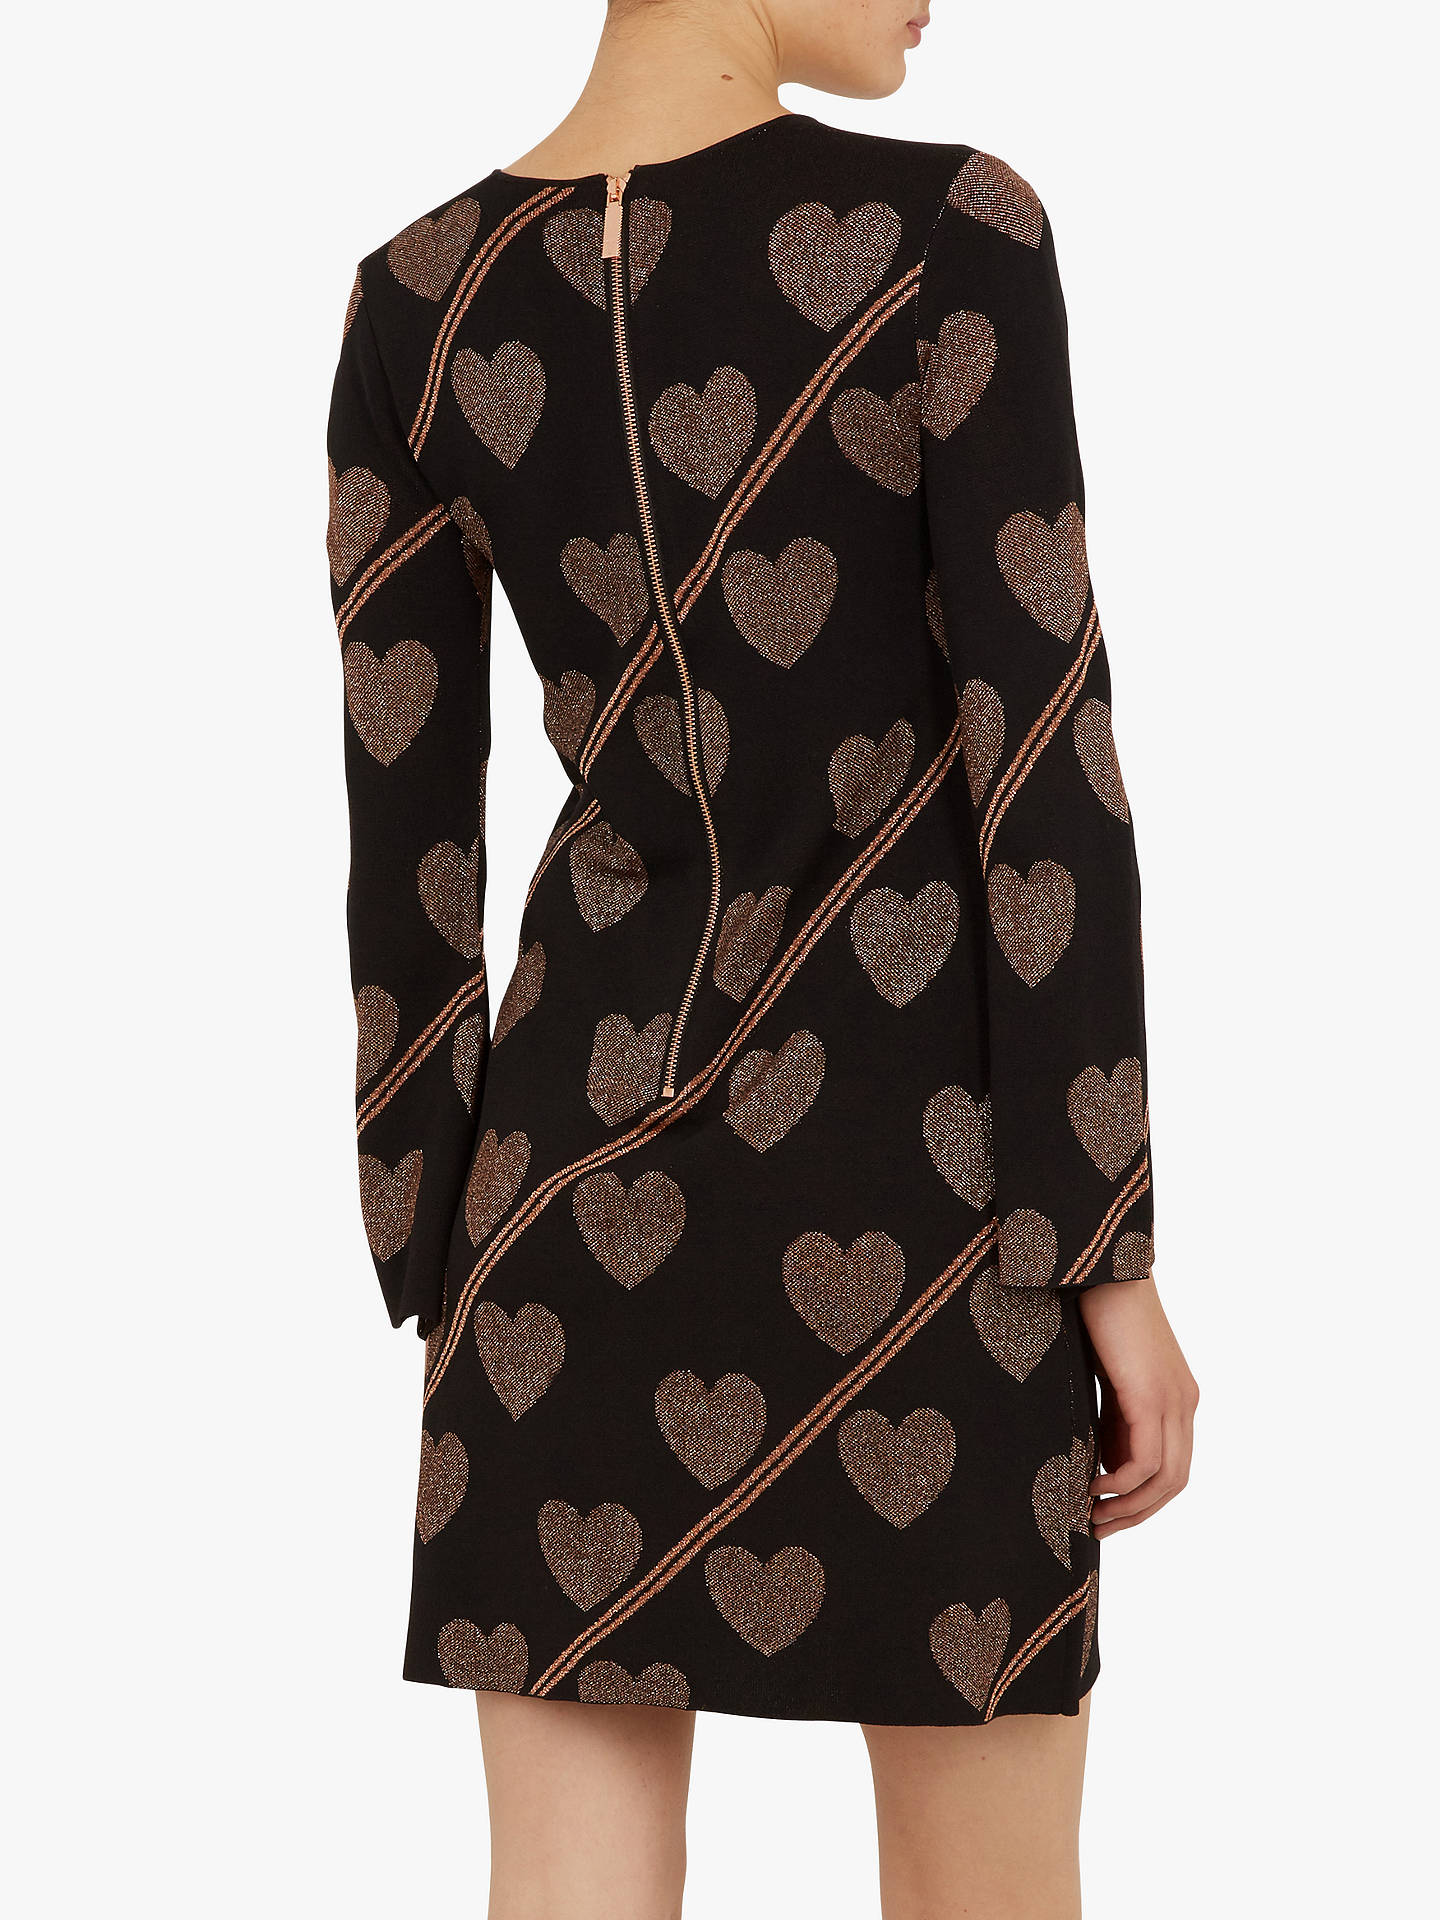 BuyTed Baker Joyous Fluted Sleeve Knitted Dress, Black, XL Online at johnlewis.com